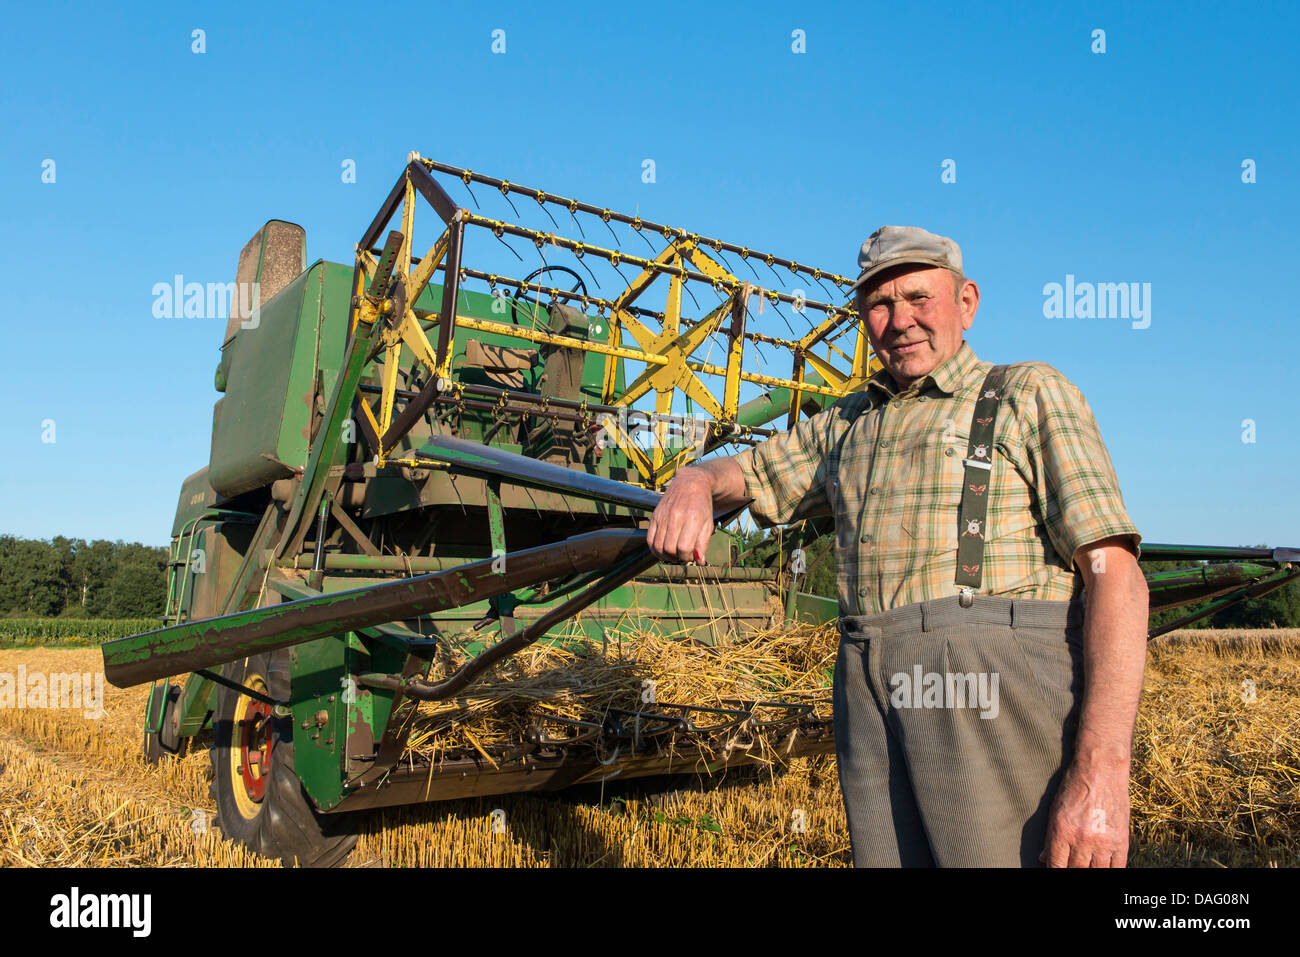 farmer in front of his old combine harvester in grain field, Germany - Stock Image